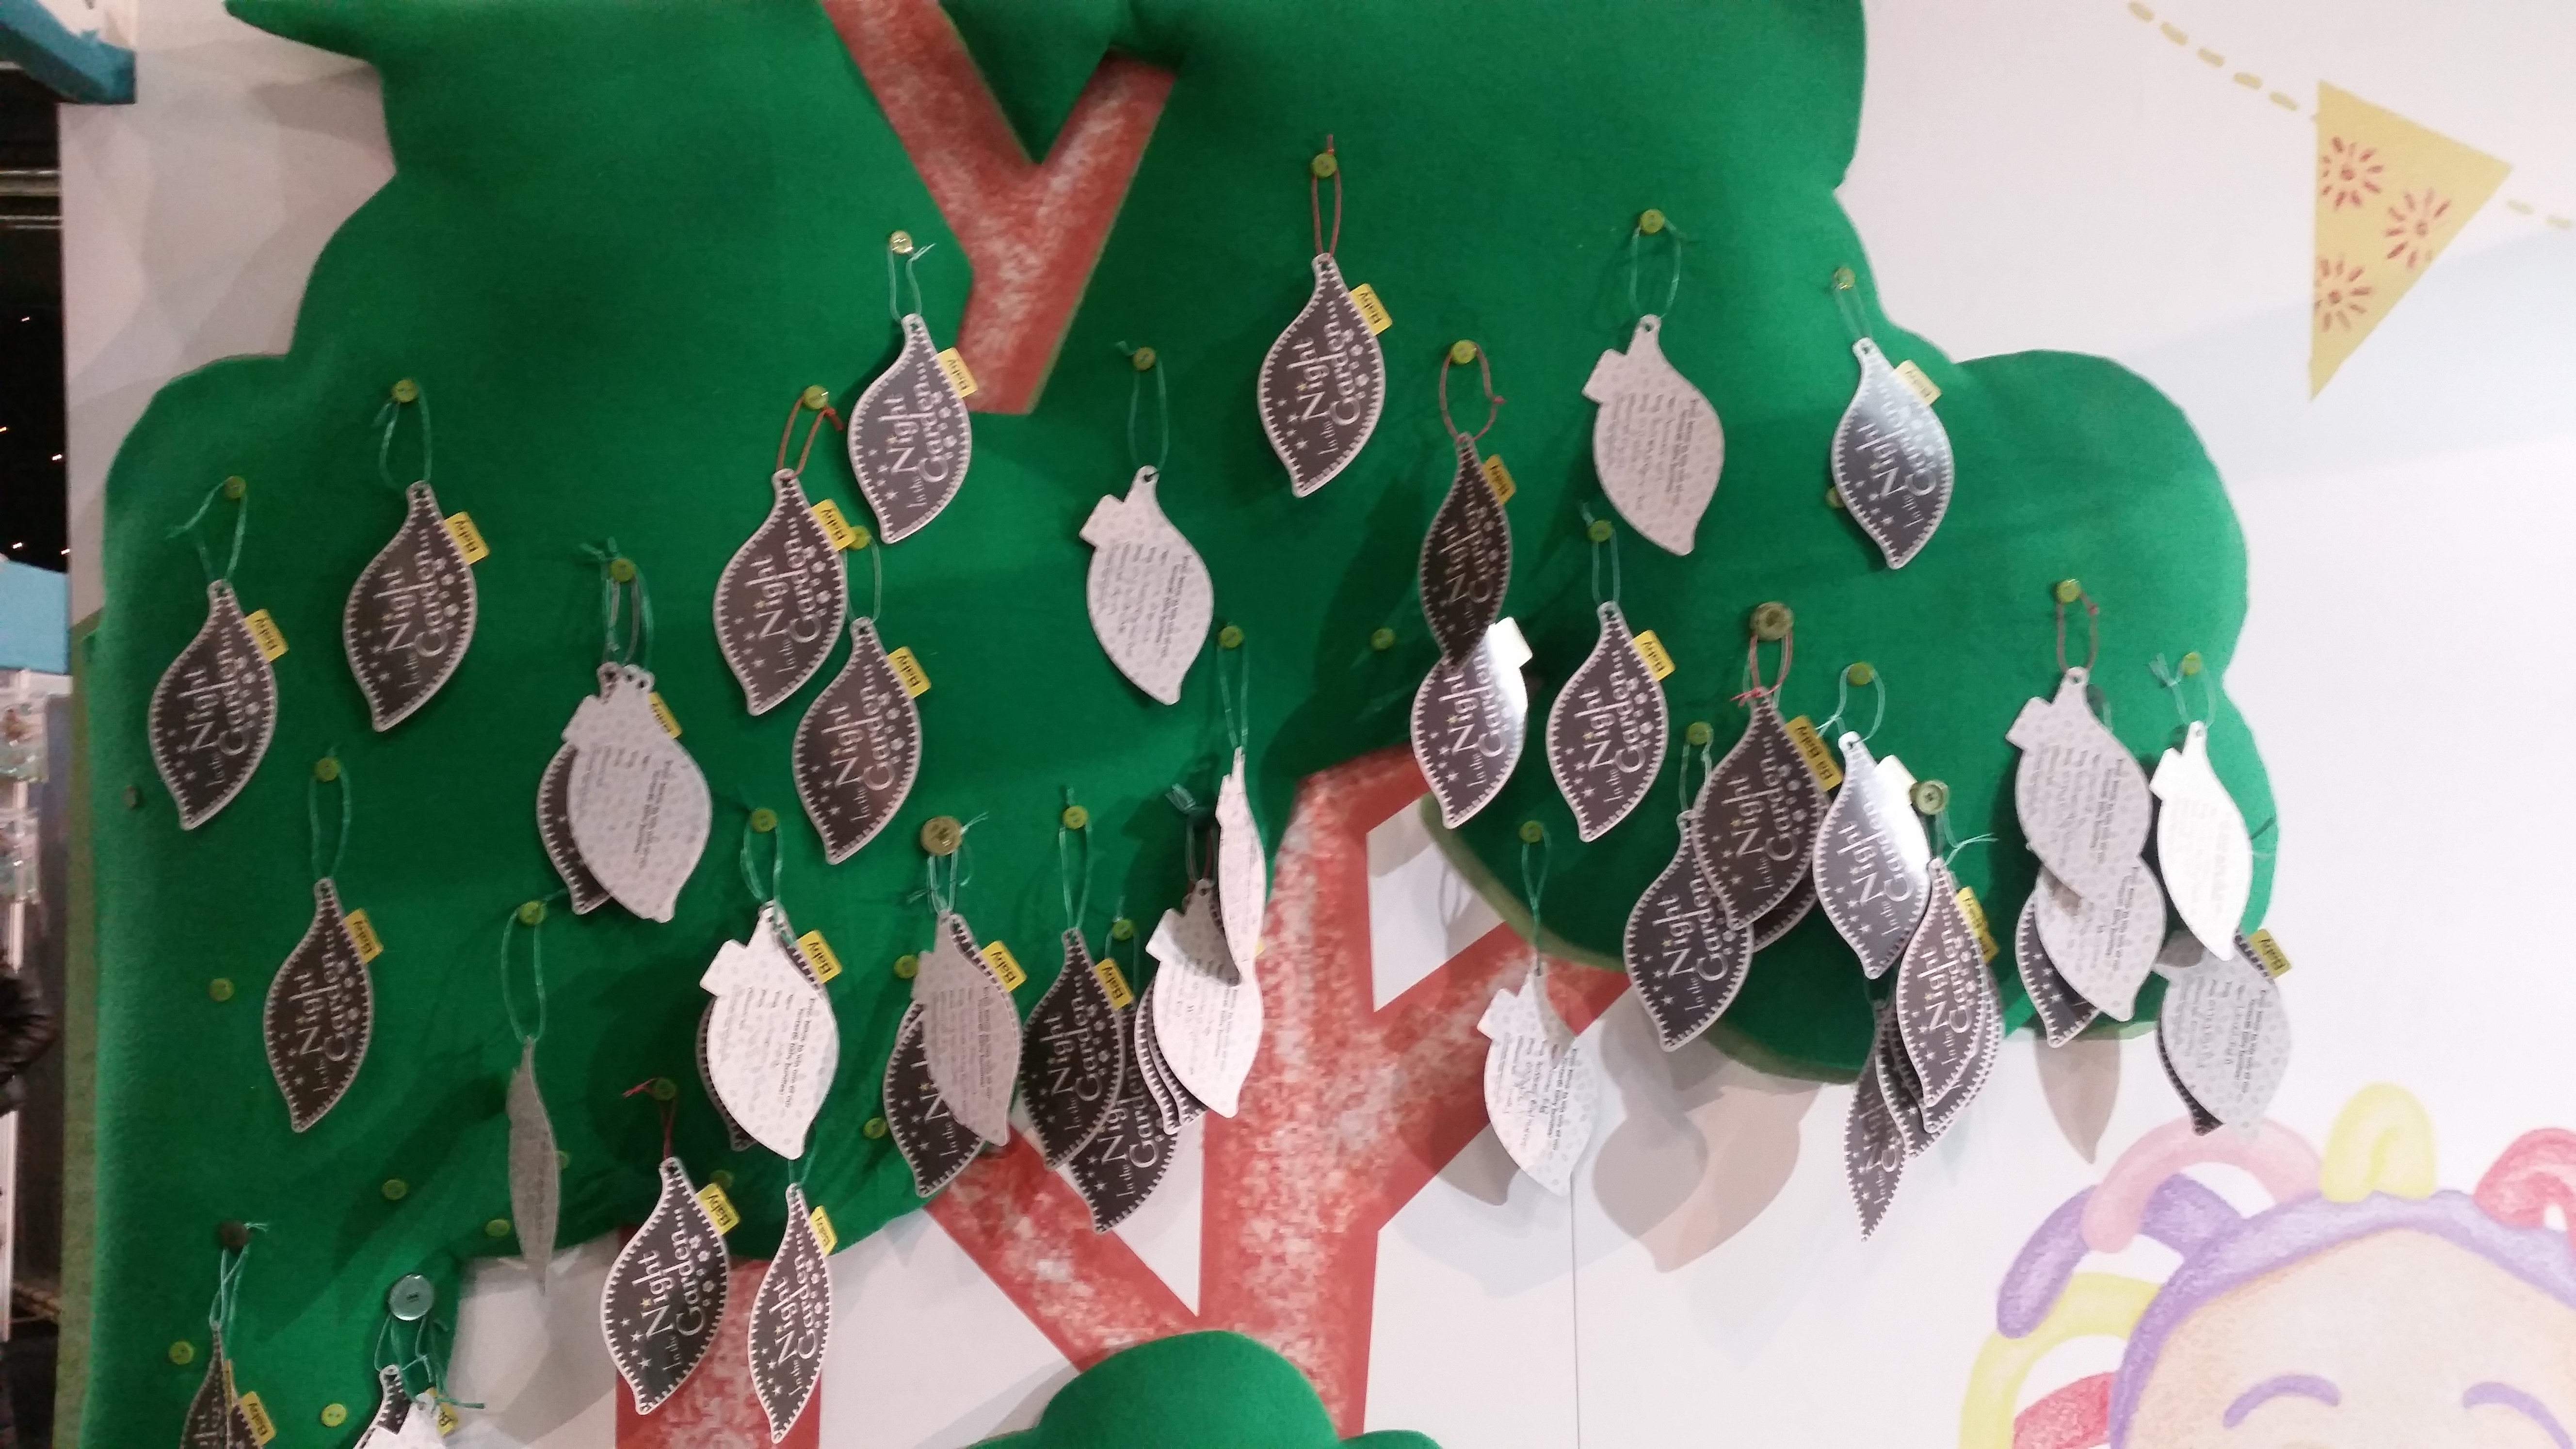 Silver In The Night Garden branded leaves hang from a green tree on a wall